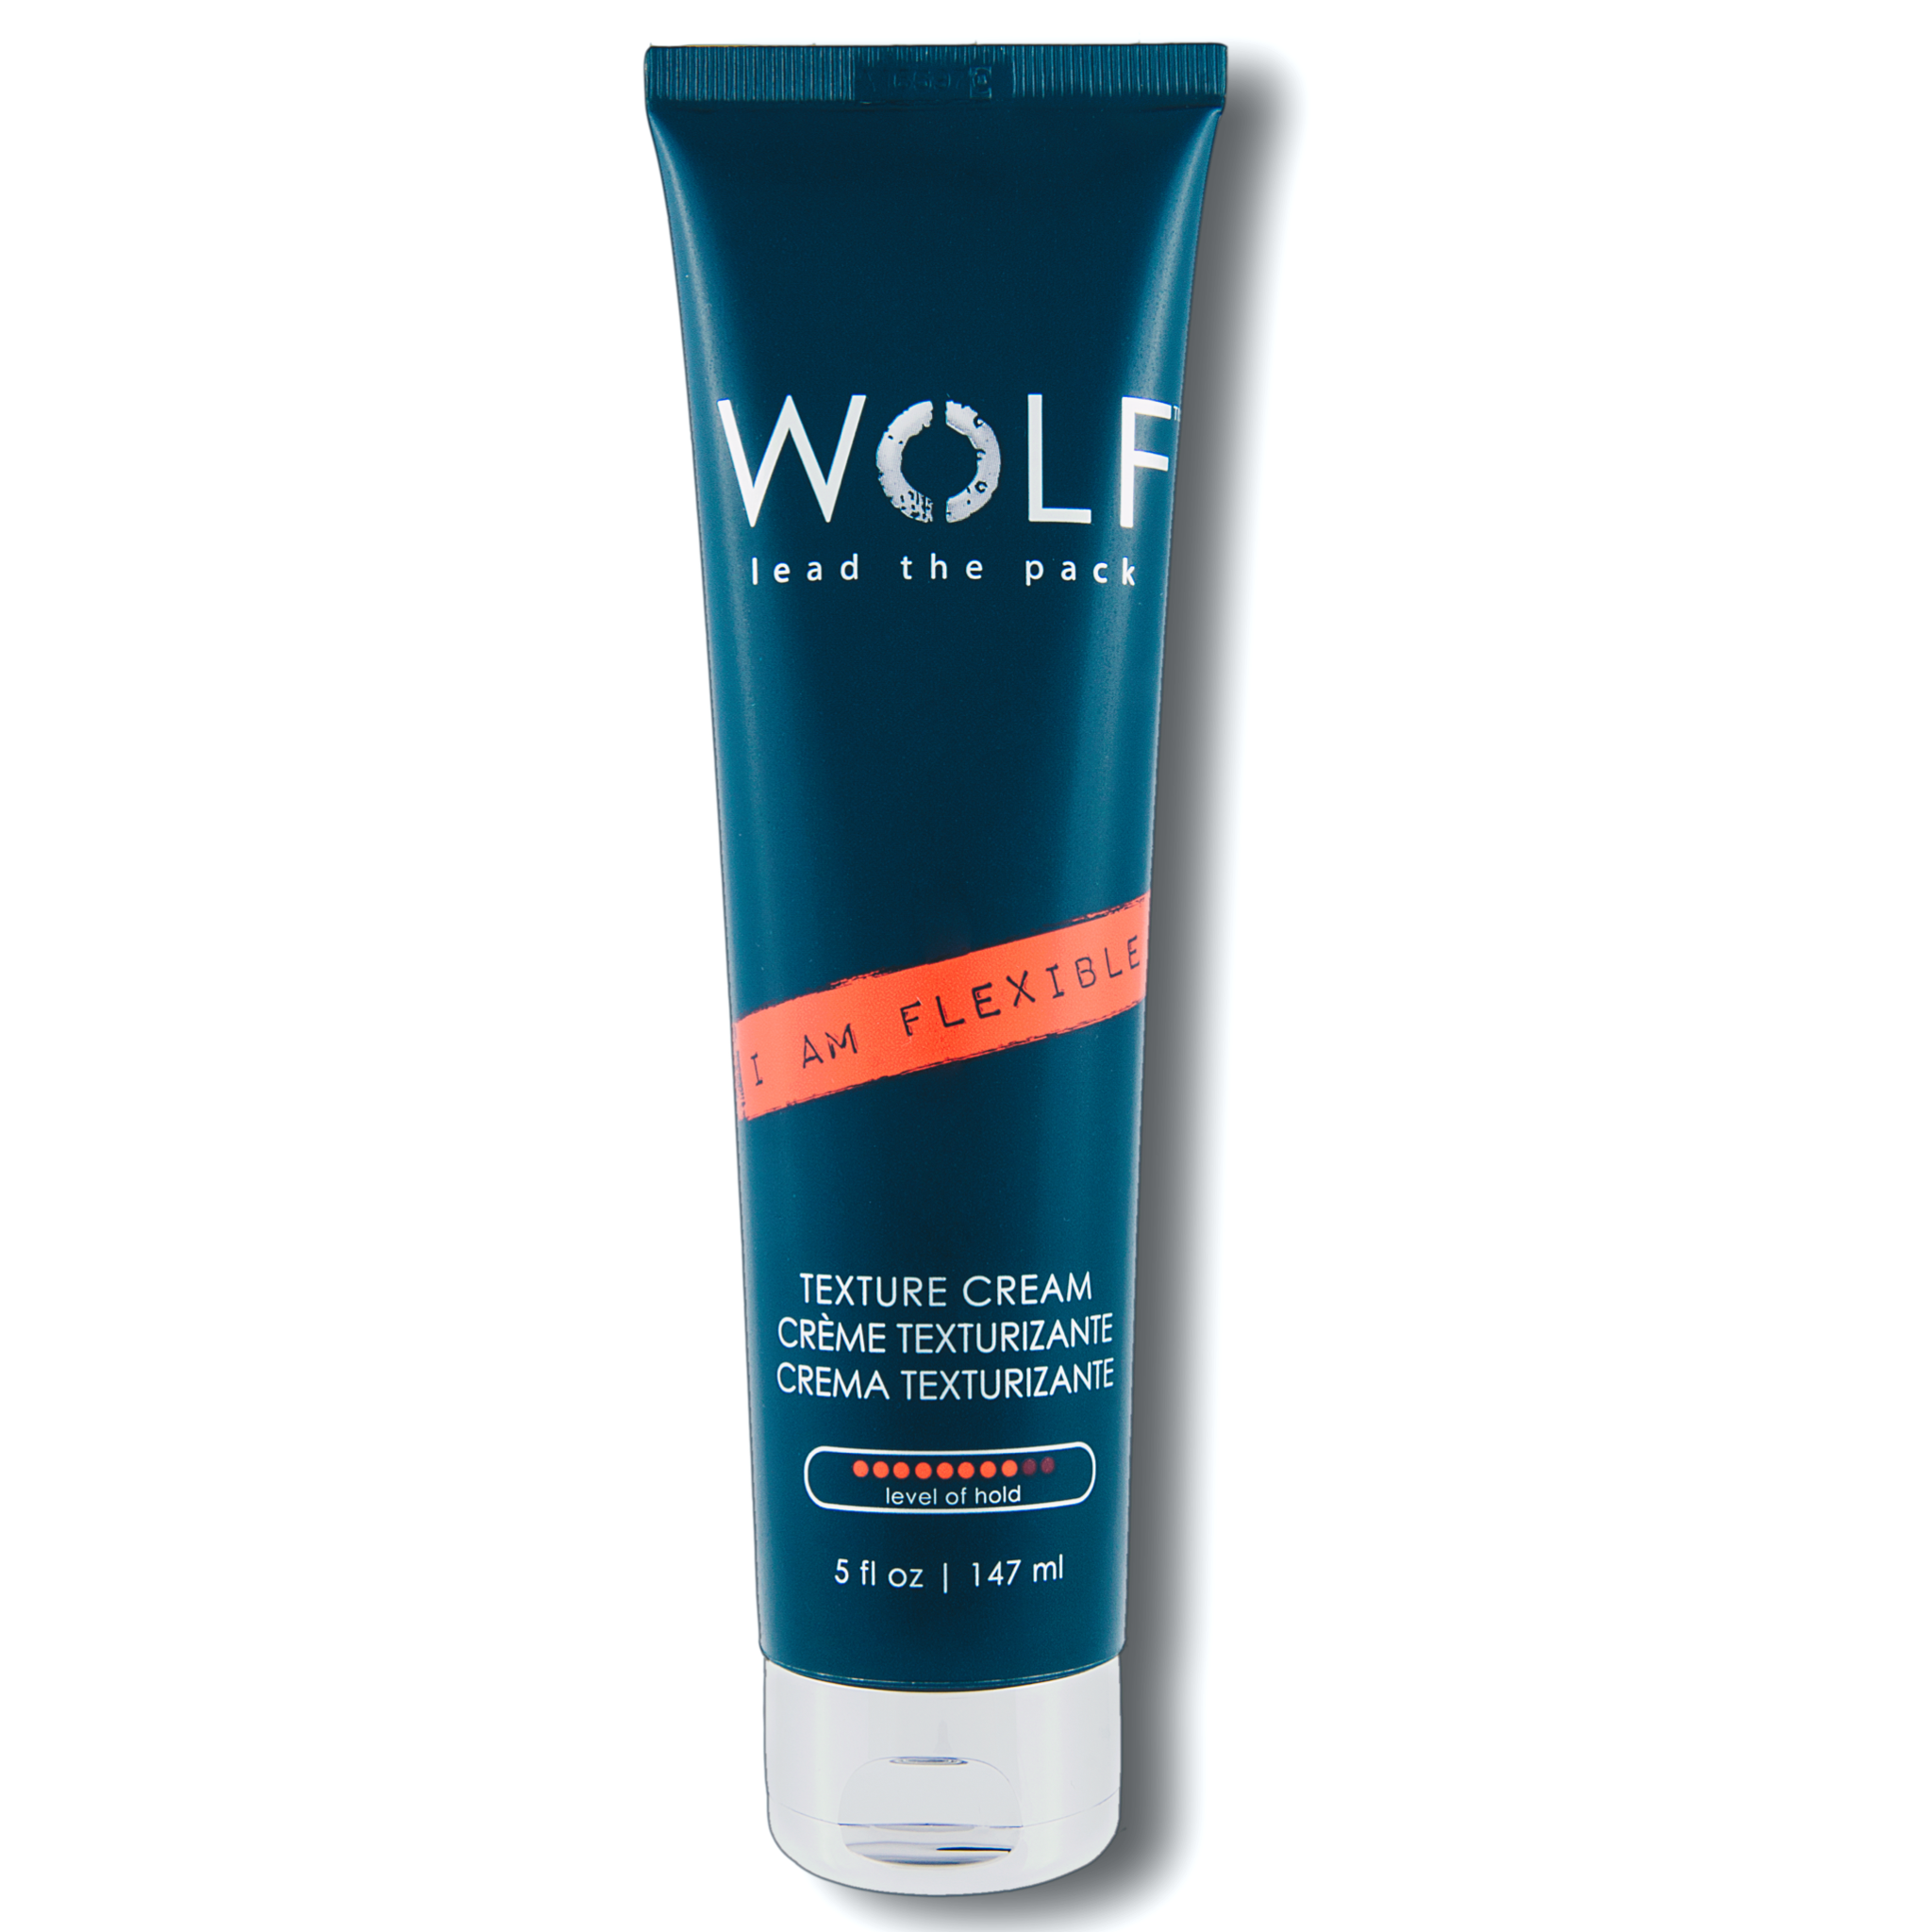 I AM FLEXIBLE Texture Cream, 5 fl oz - Wolf Grooming